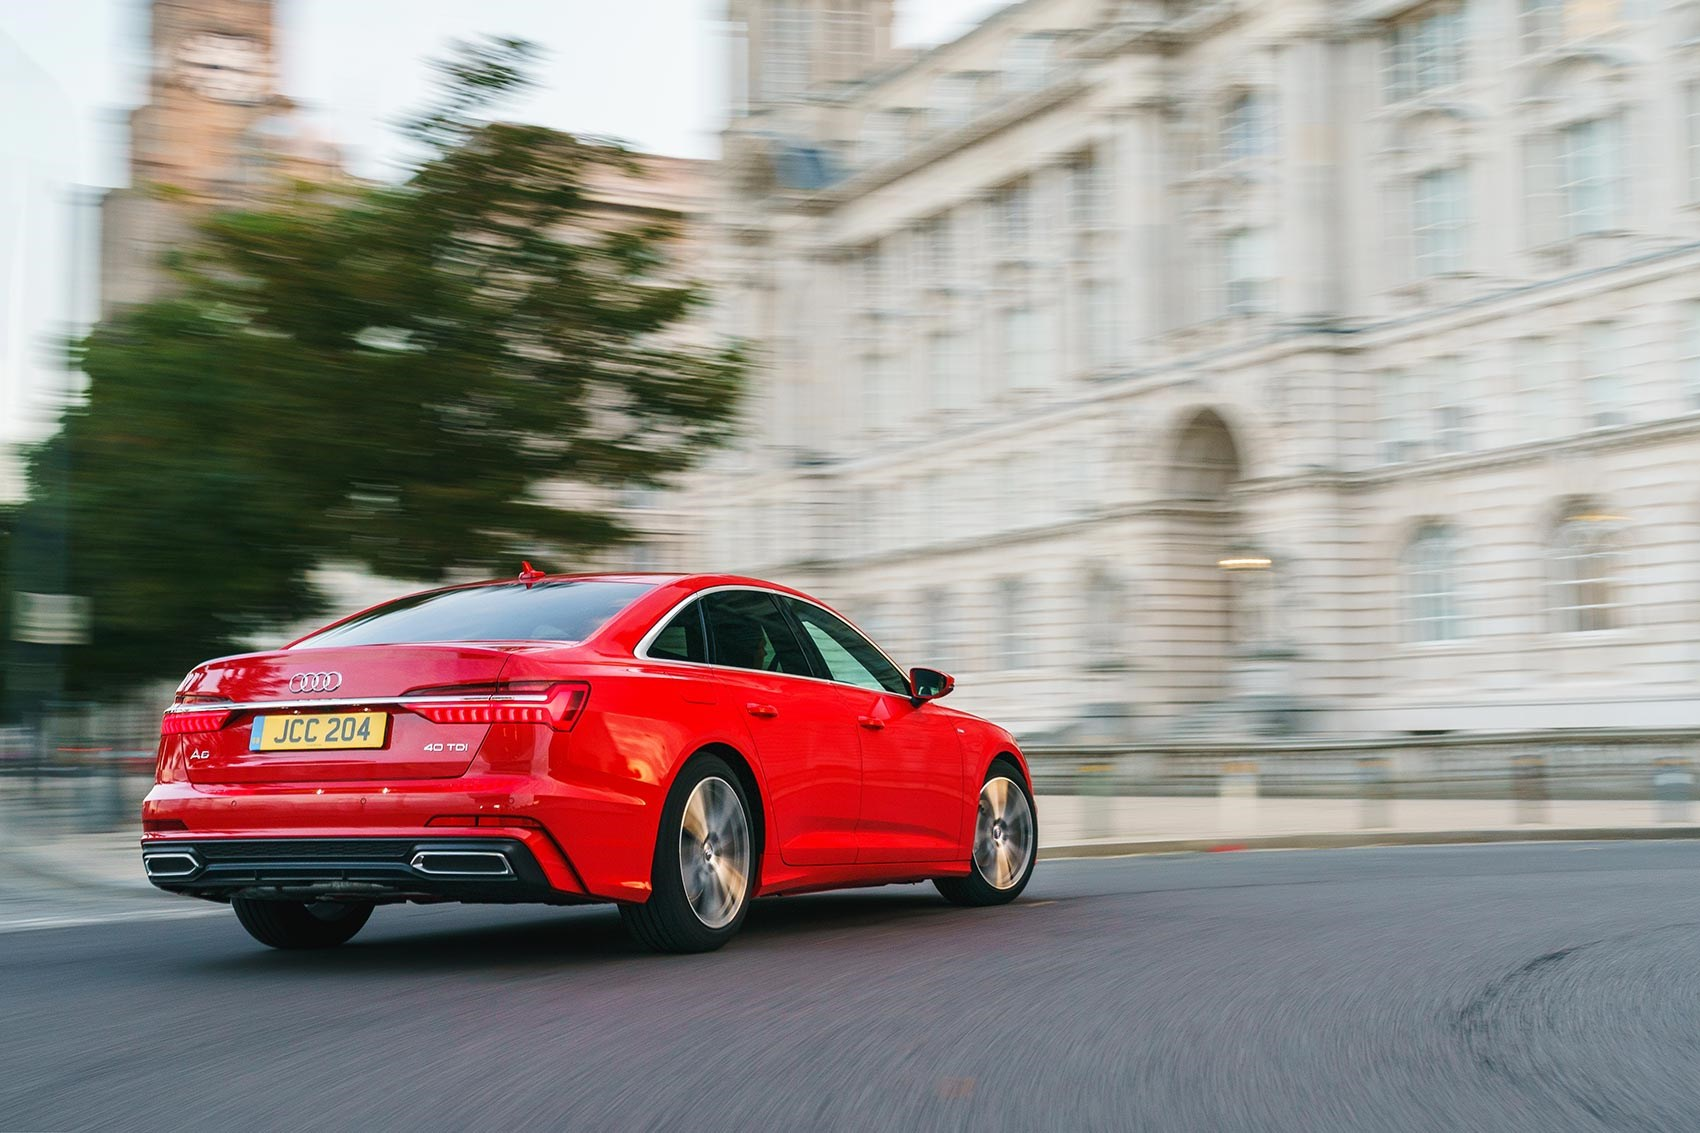 Audi A6 review in the UK by CAR magazine